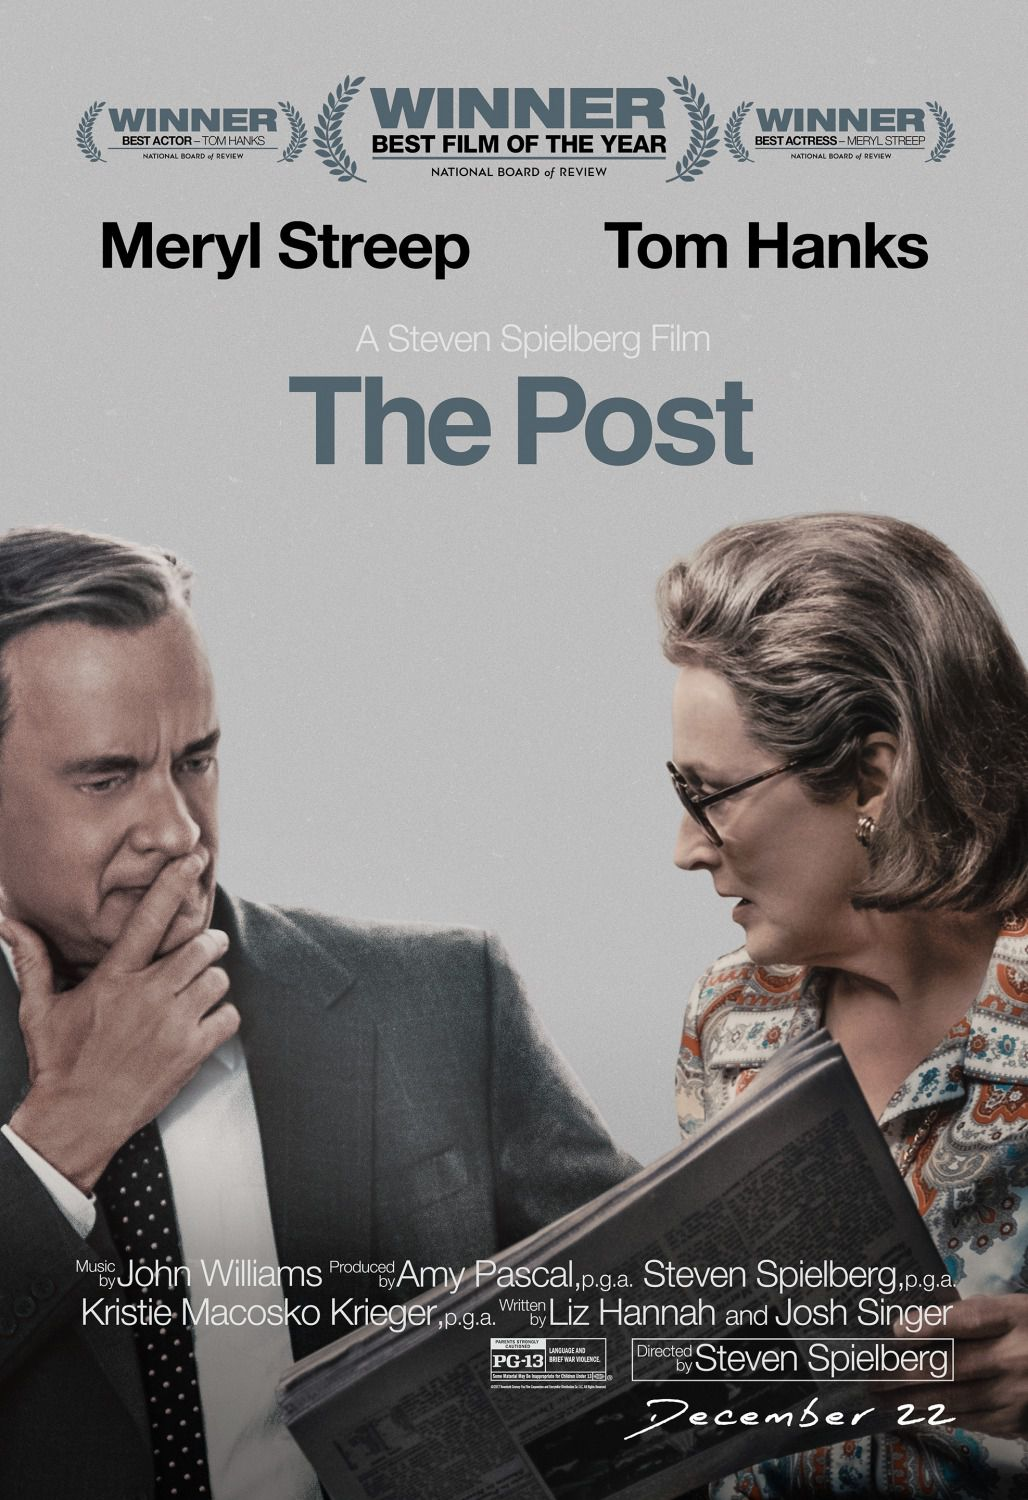 The Post - press film poster - Tom Hanks, Meryl Streep